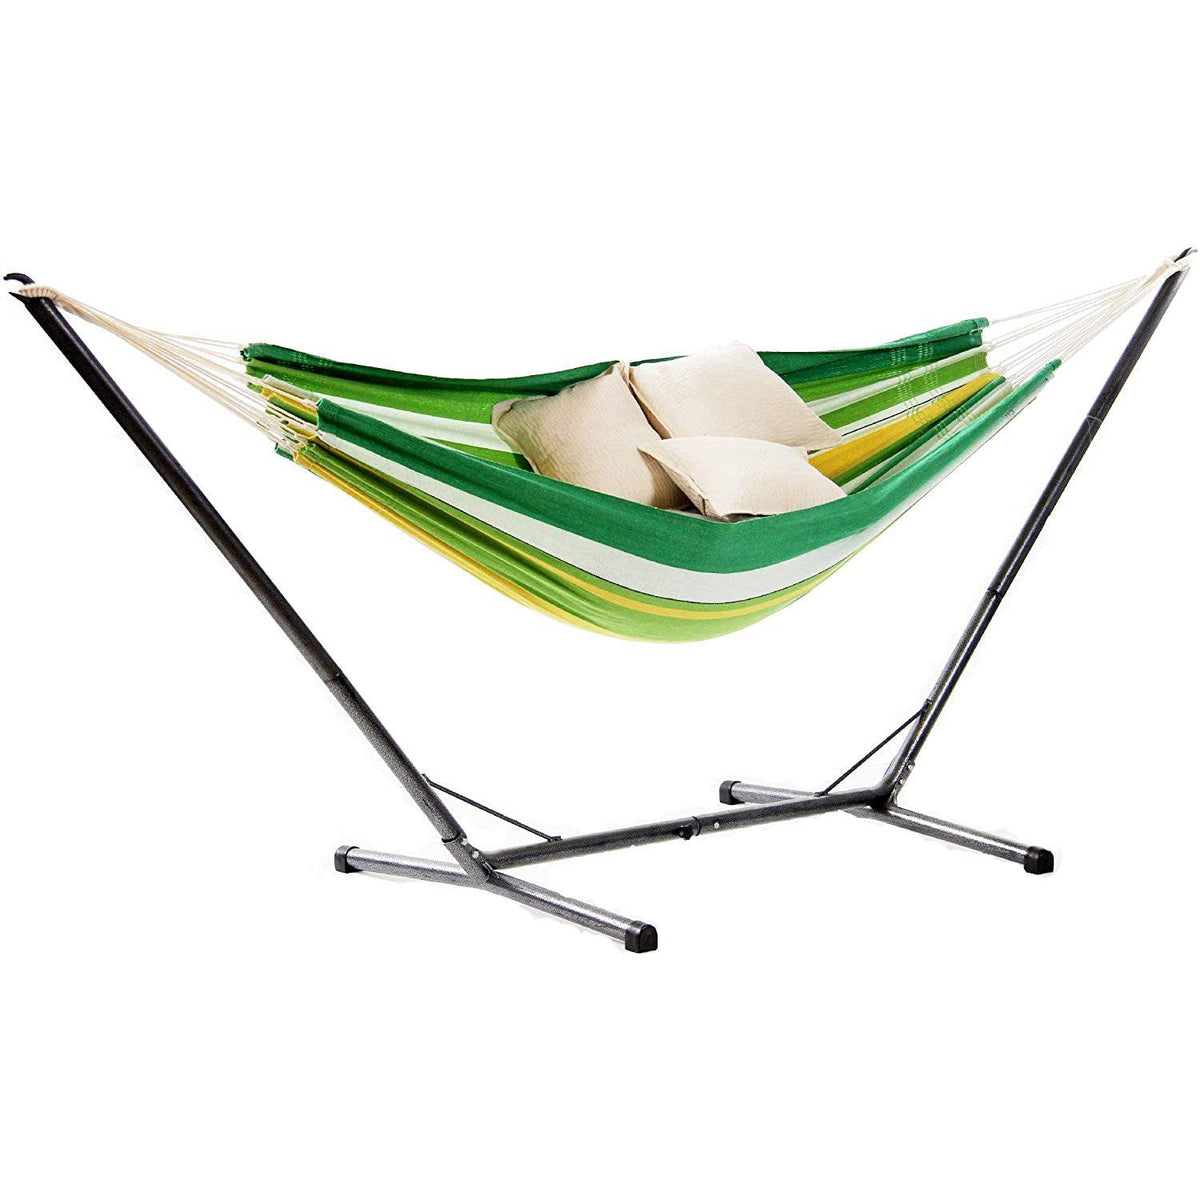 Lambada Hammock and Ceara Hammock Stand, Apple Green, from Byer of Maine